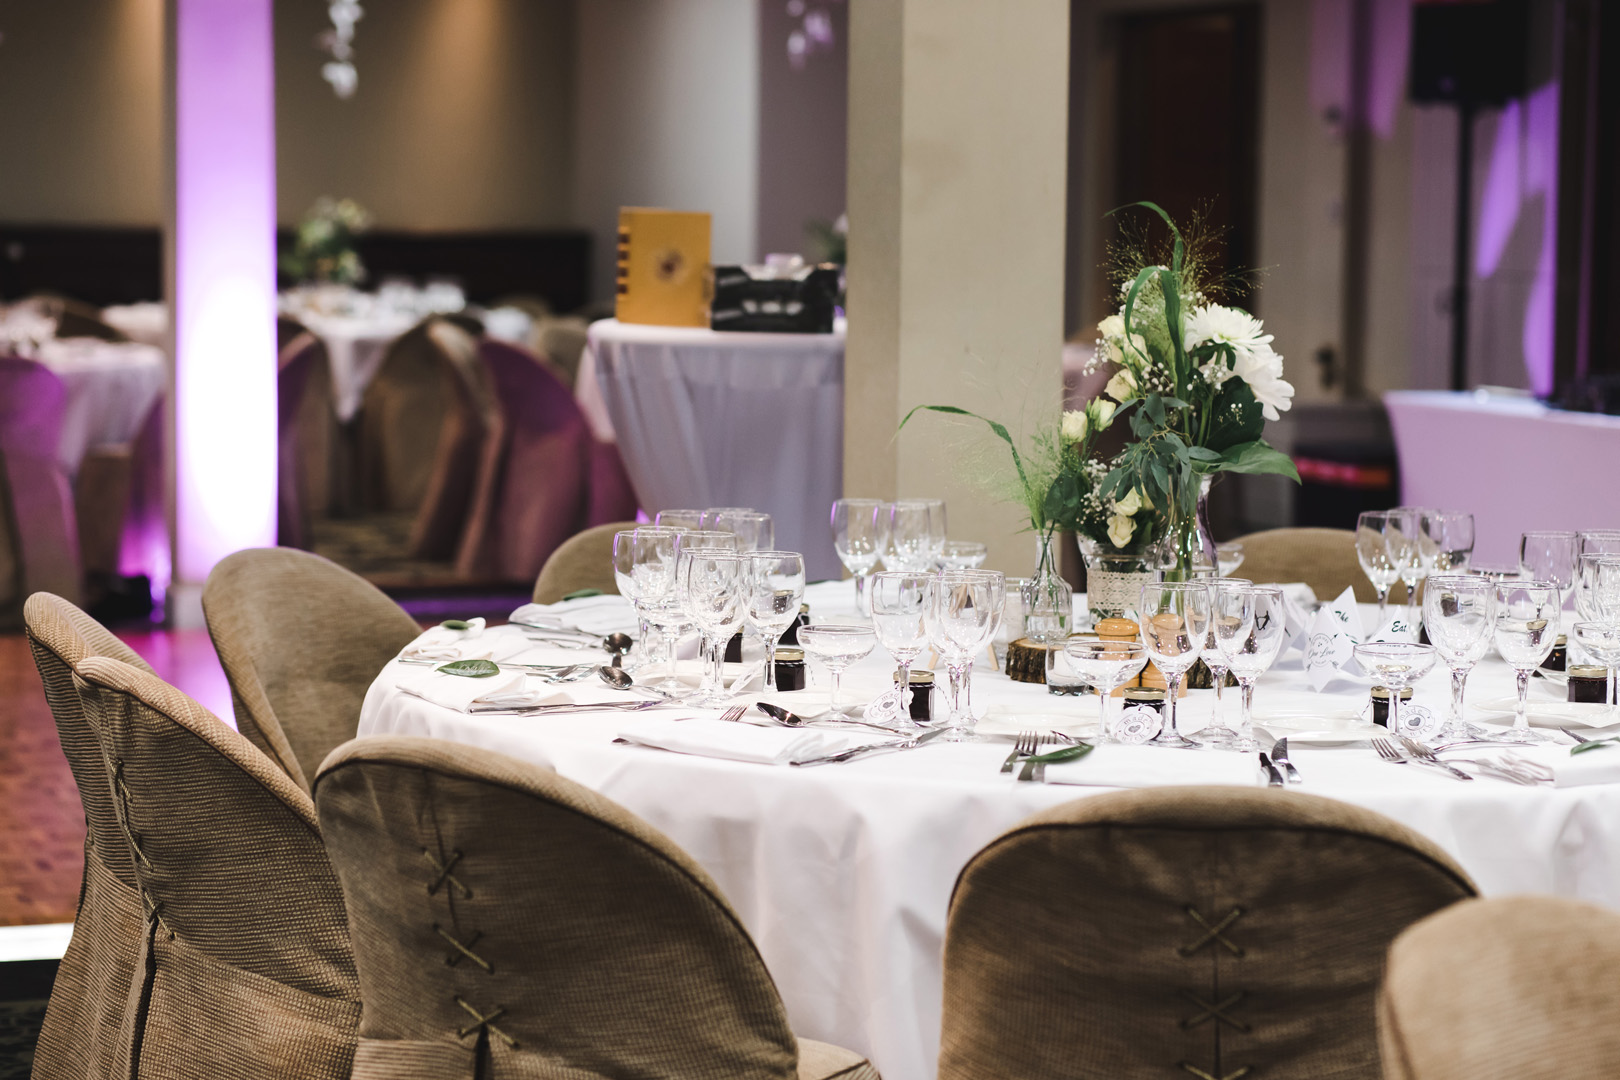 343/mariages et receptions/mariage-hotel-tresoms-decoration-salle-reception-invites.jpg